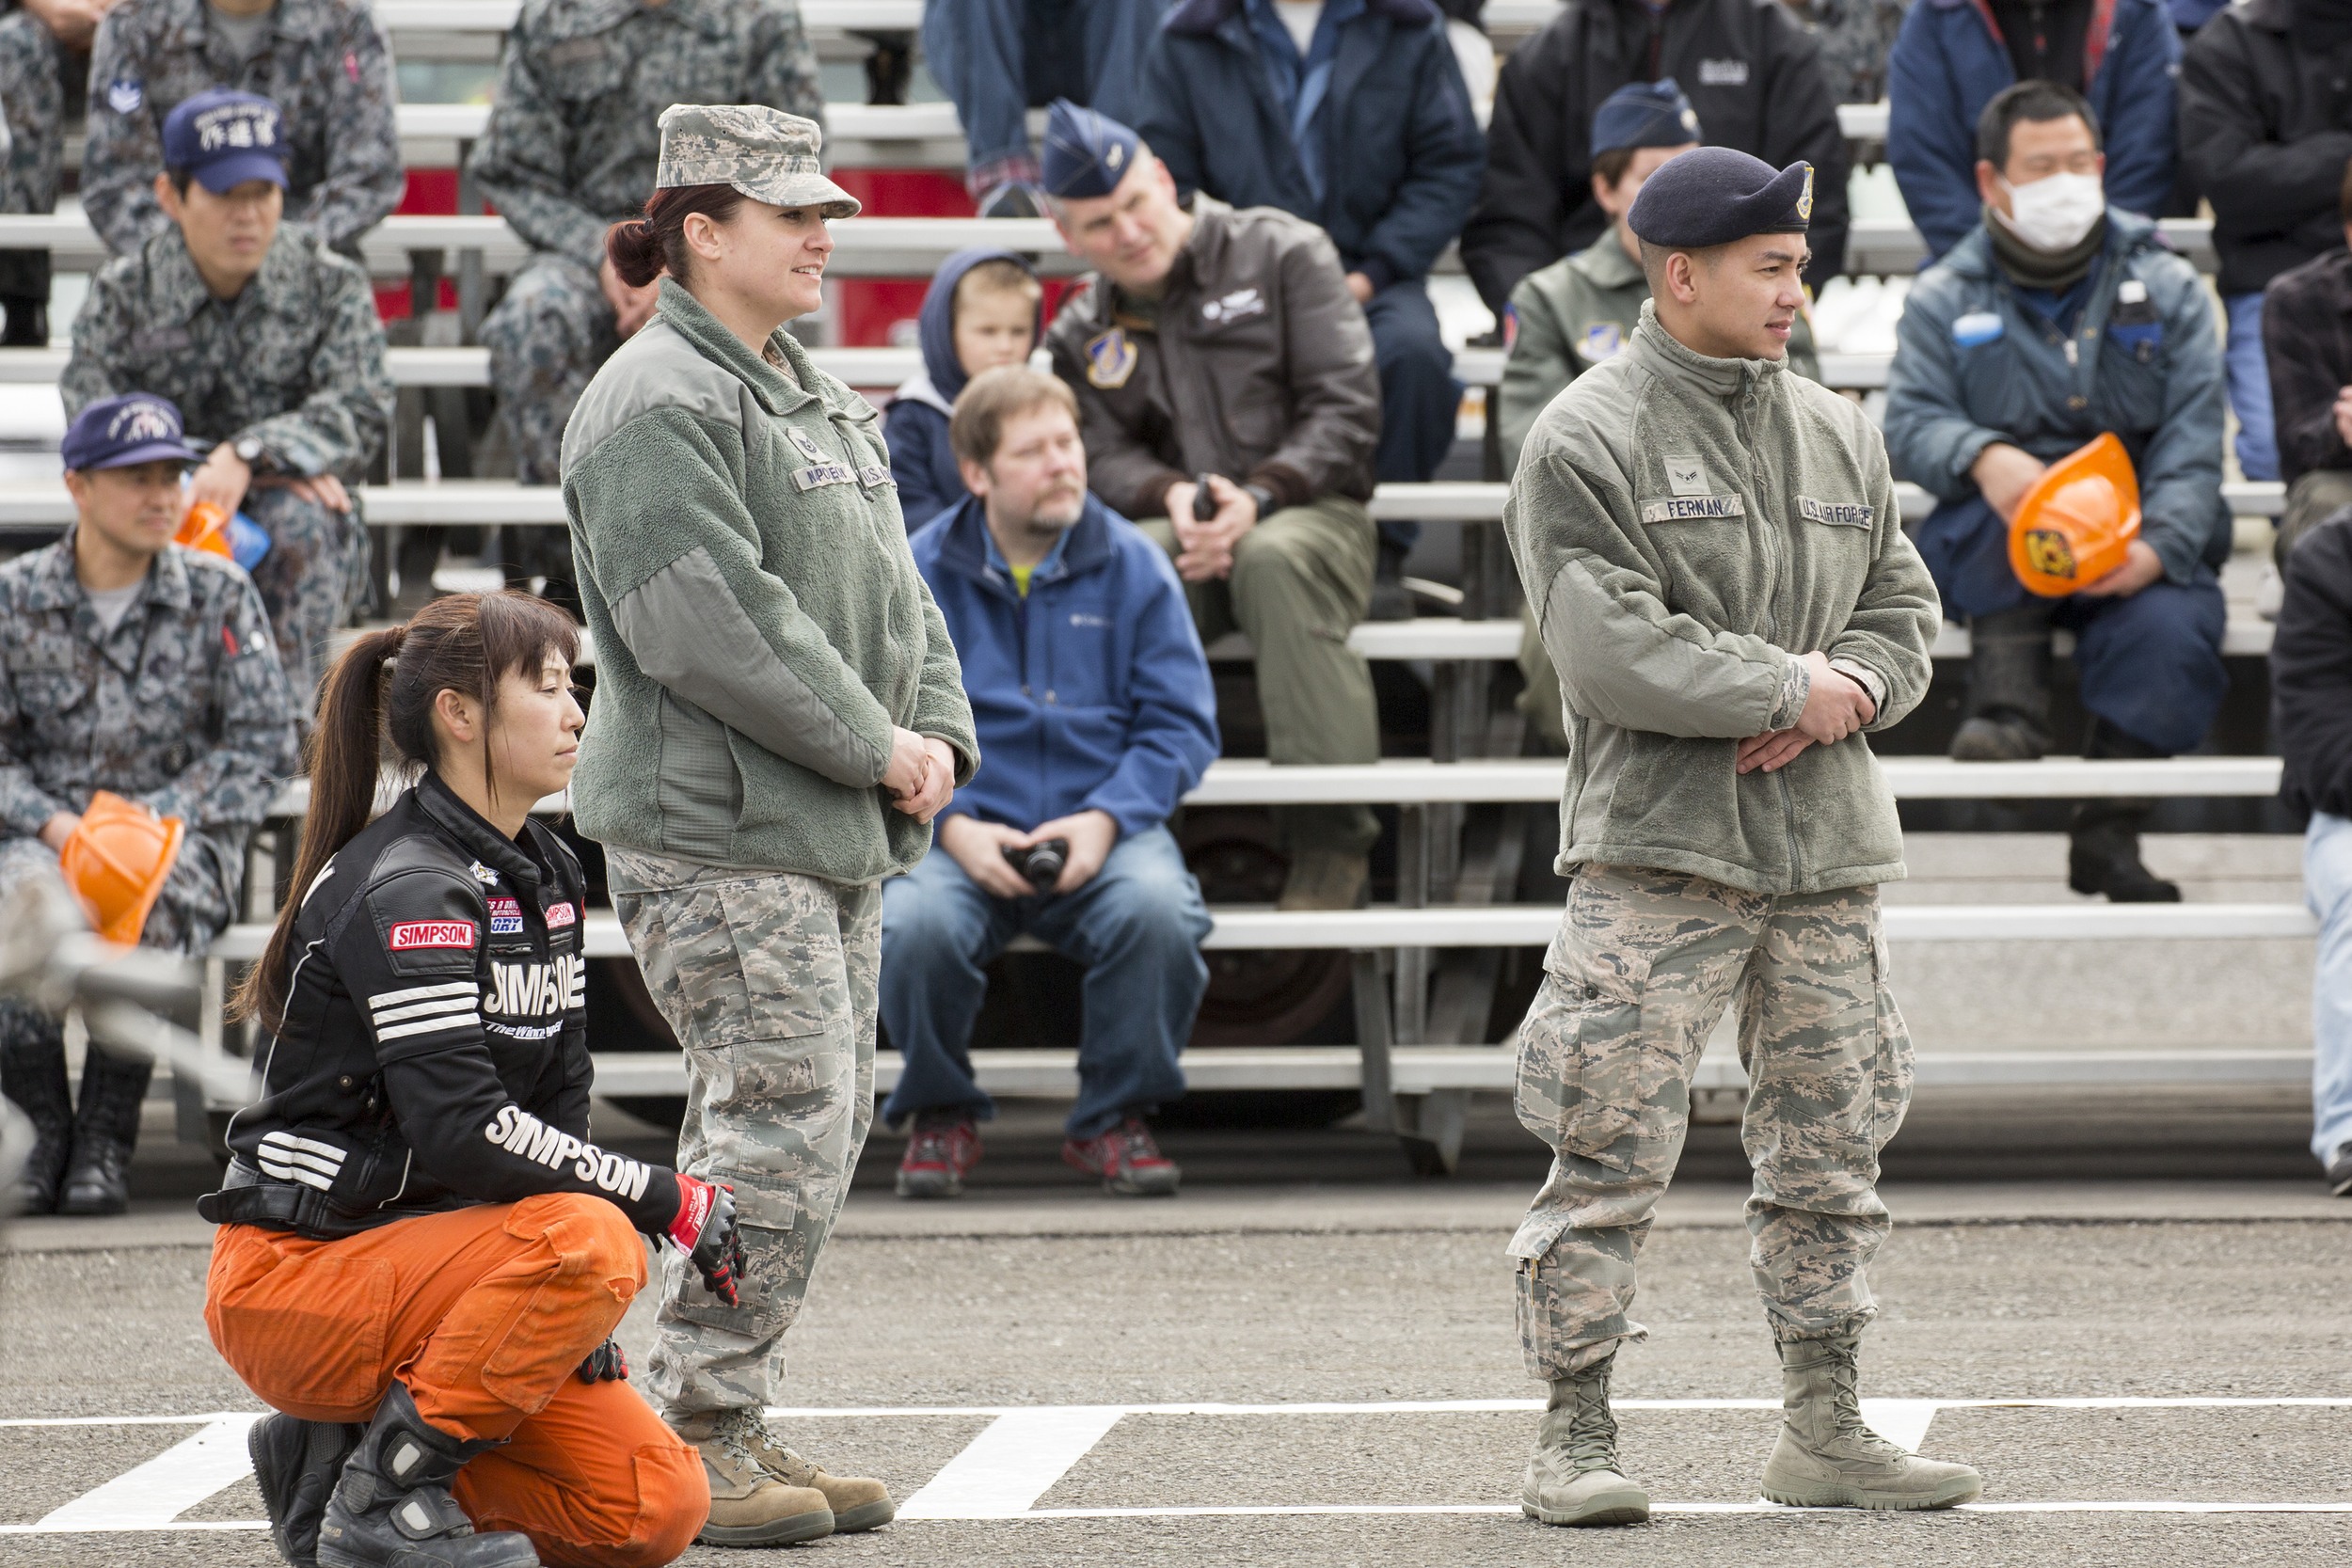 (Left to right) Tech. Sgt. Laury Napoleoni, 374th Airlift Wing Safety ground safety manager, and Airman 1st Class Lawrence Fernan, 374th Security Forces Squadron patrolman, watch an in-your-face car accident demonstration during the safety festival at Yokota Air Base, Japan, March 6, 2015. The Fussa police station sponsored a traffic safety demonstration for Yokota residents during the fest. The event demonstrated hairy moment in car accidents. (U.S. Air Force photo by Osakabe Yasuo/Released)